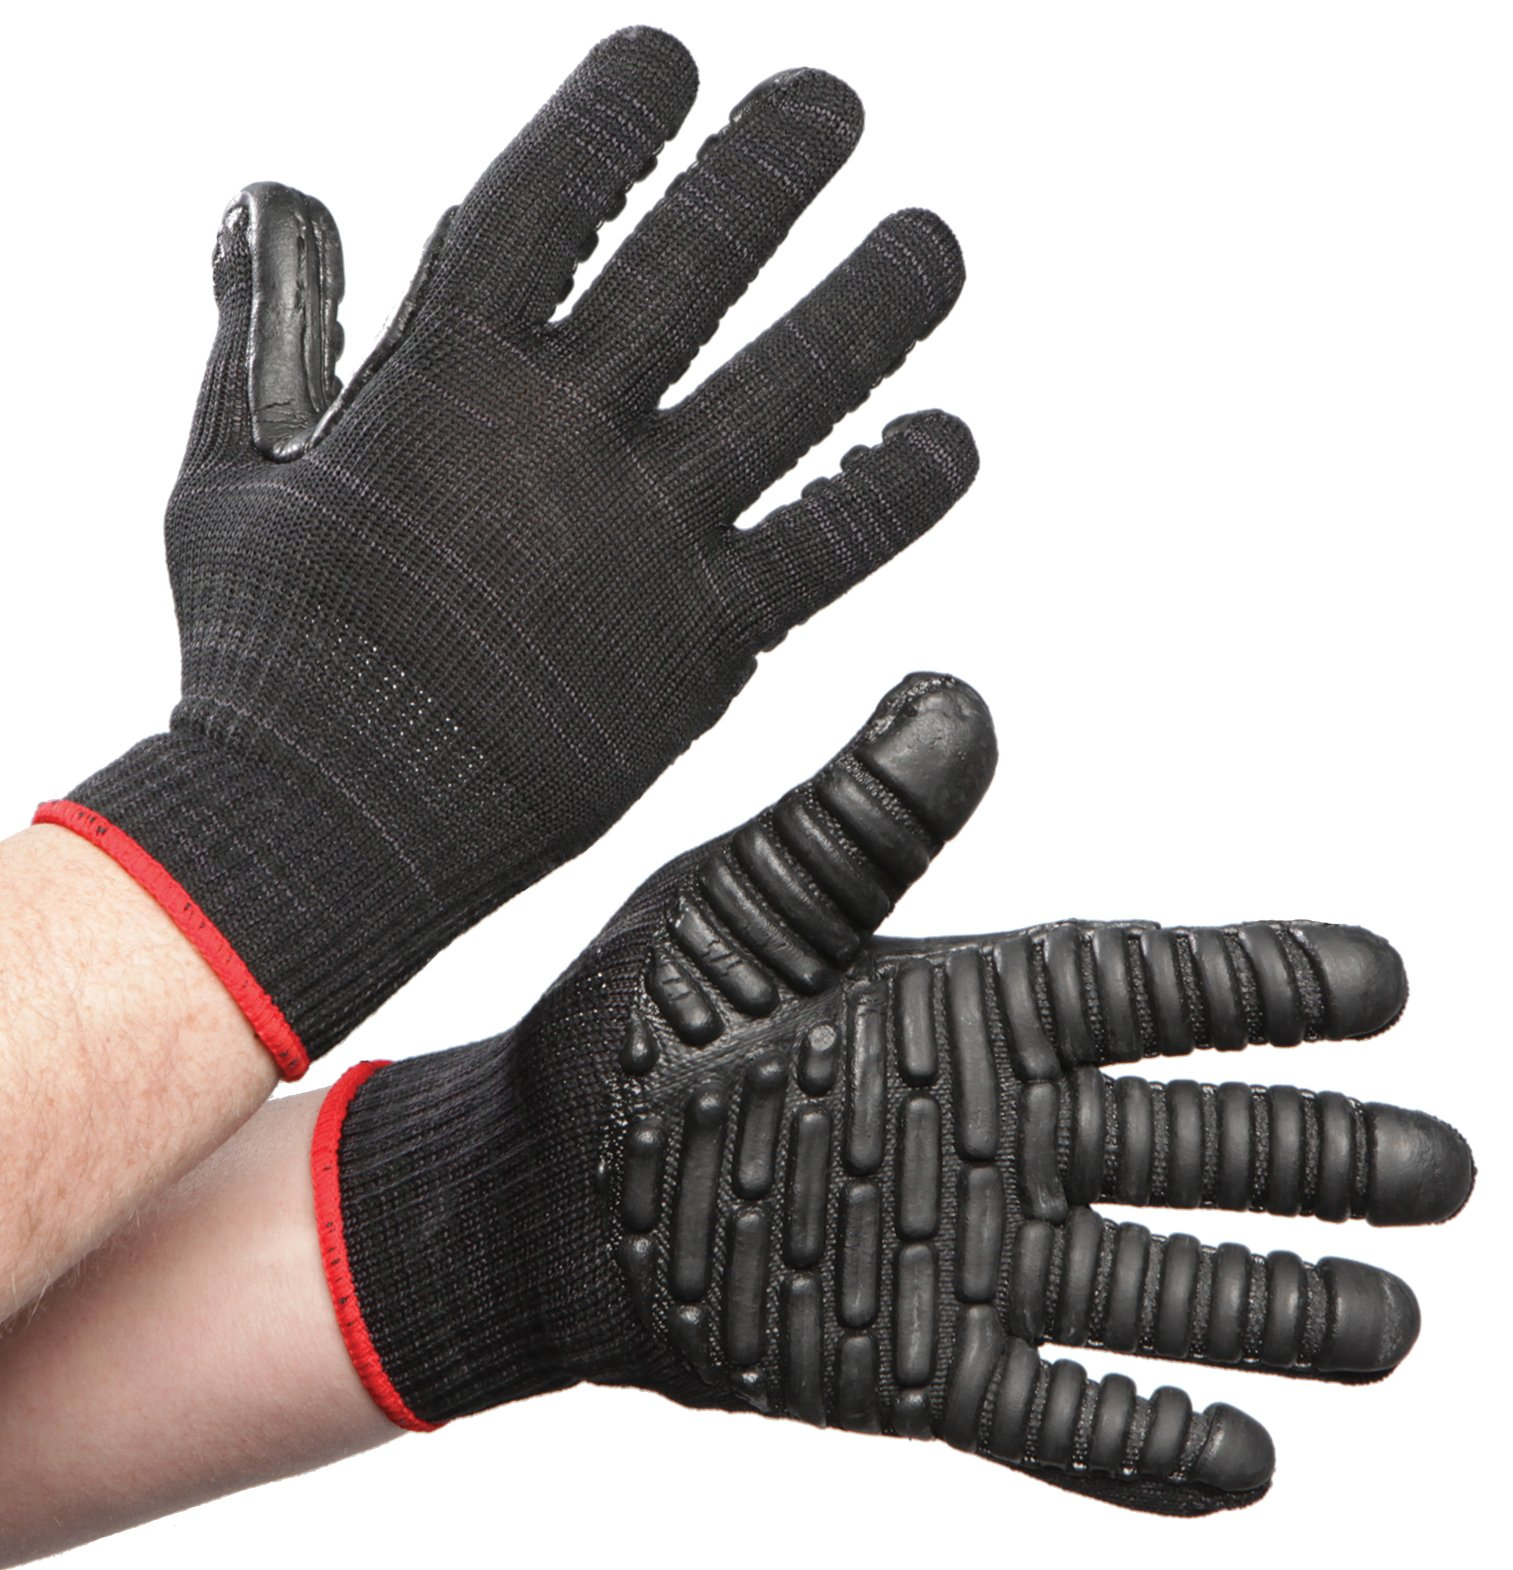 Impacto VI473240 Vibration Reducing Glove, Black